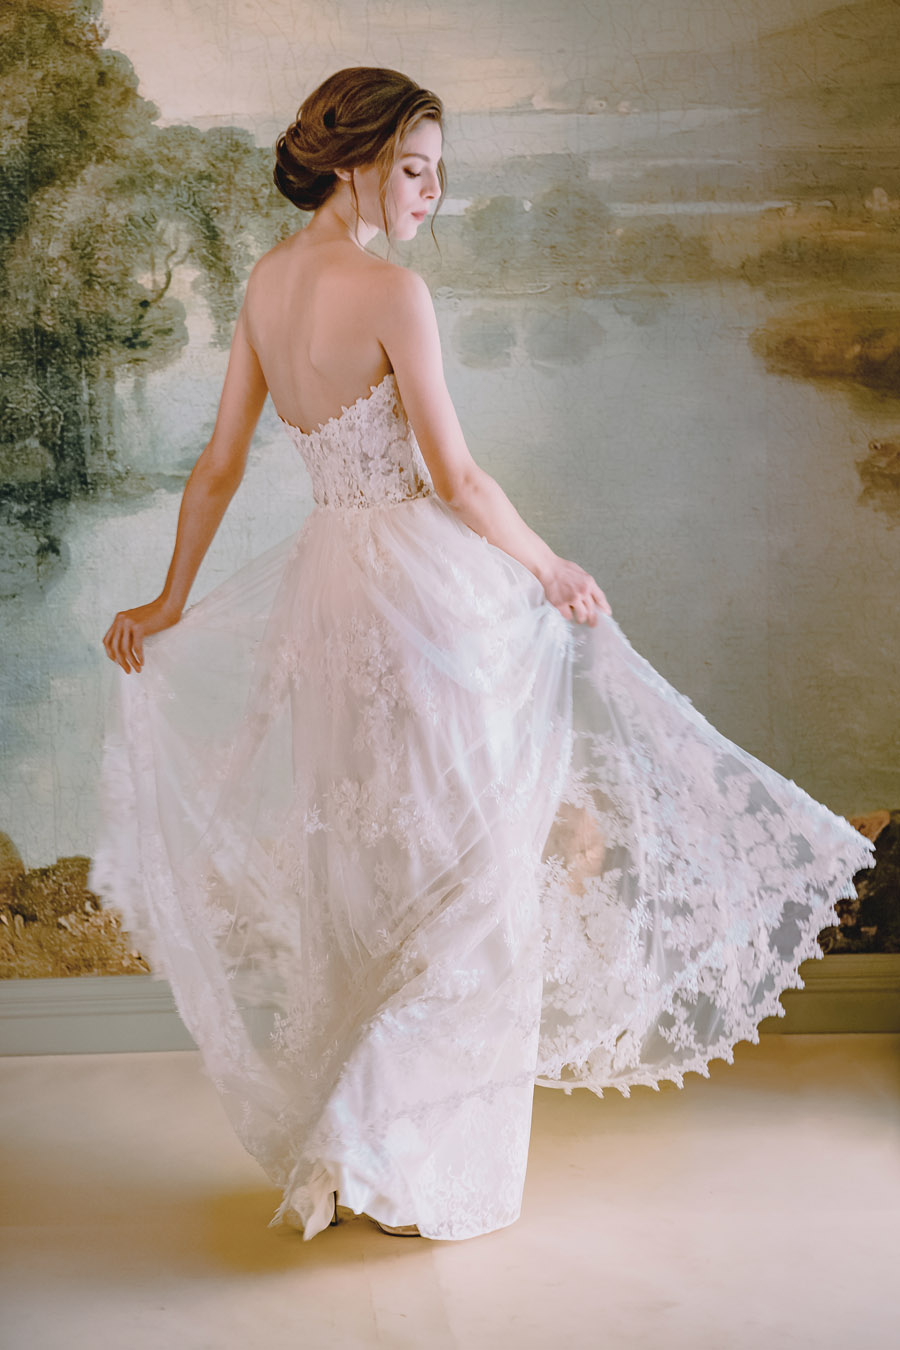 Claire Pettibone 2020 wedding dress ideas (17)